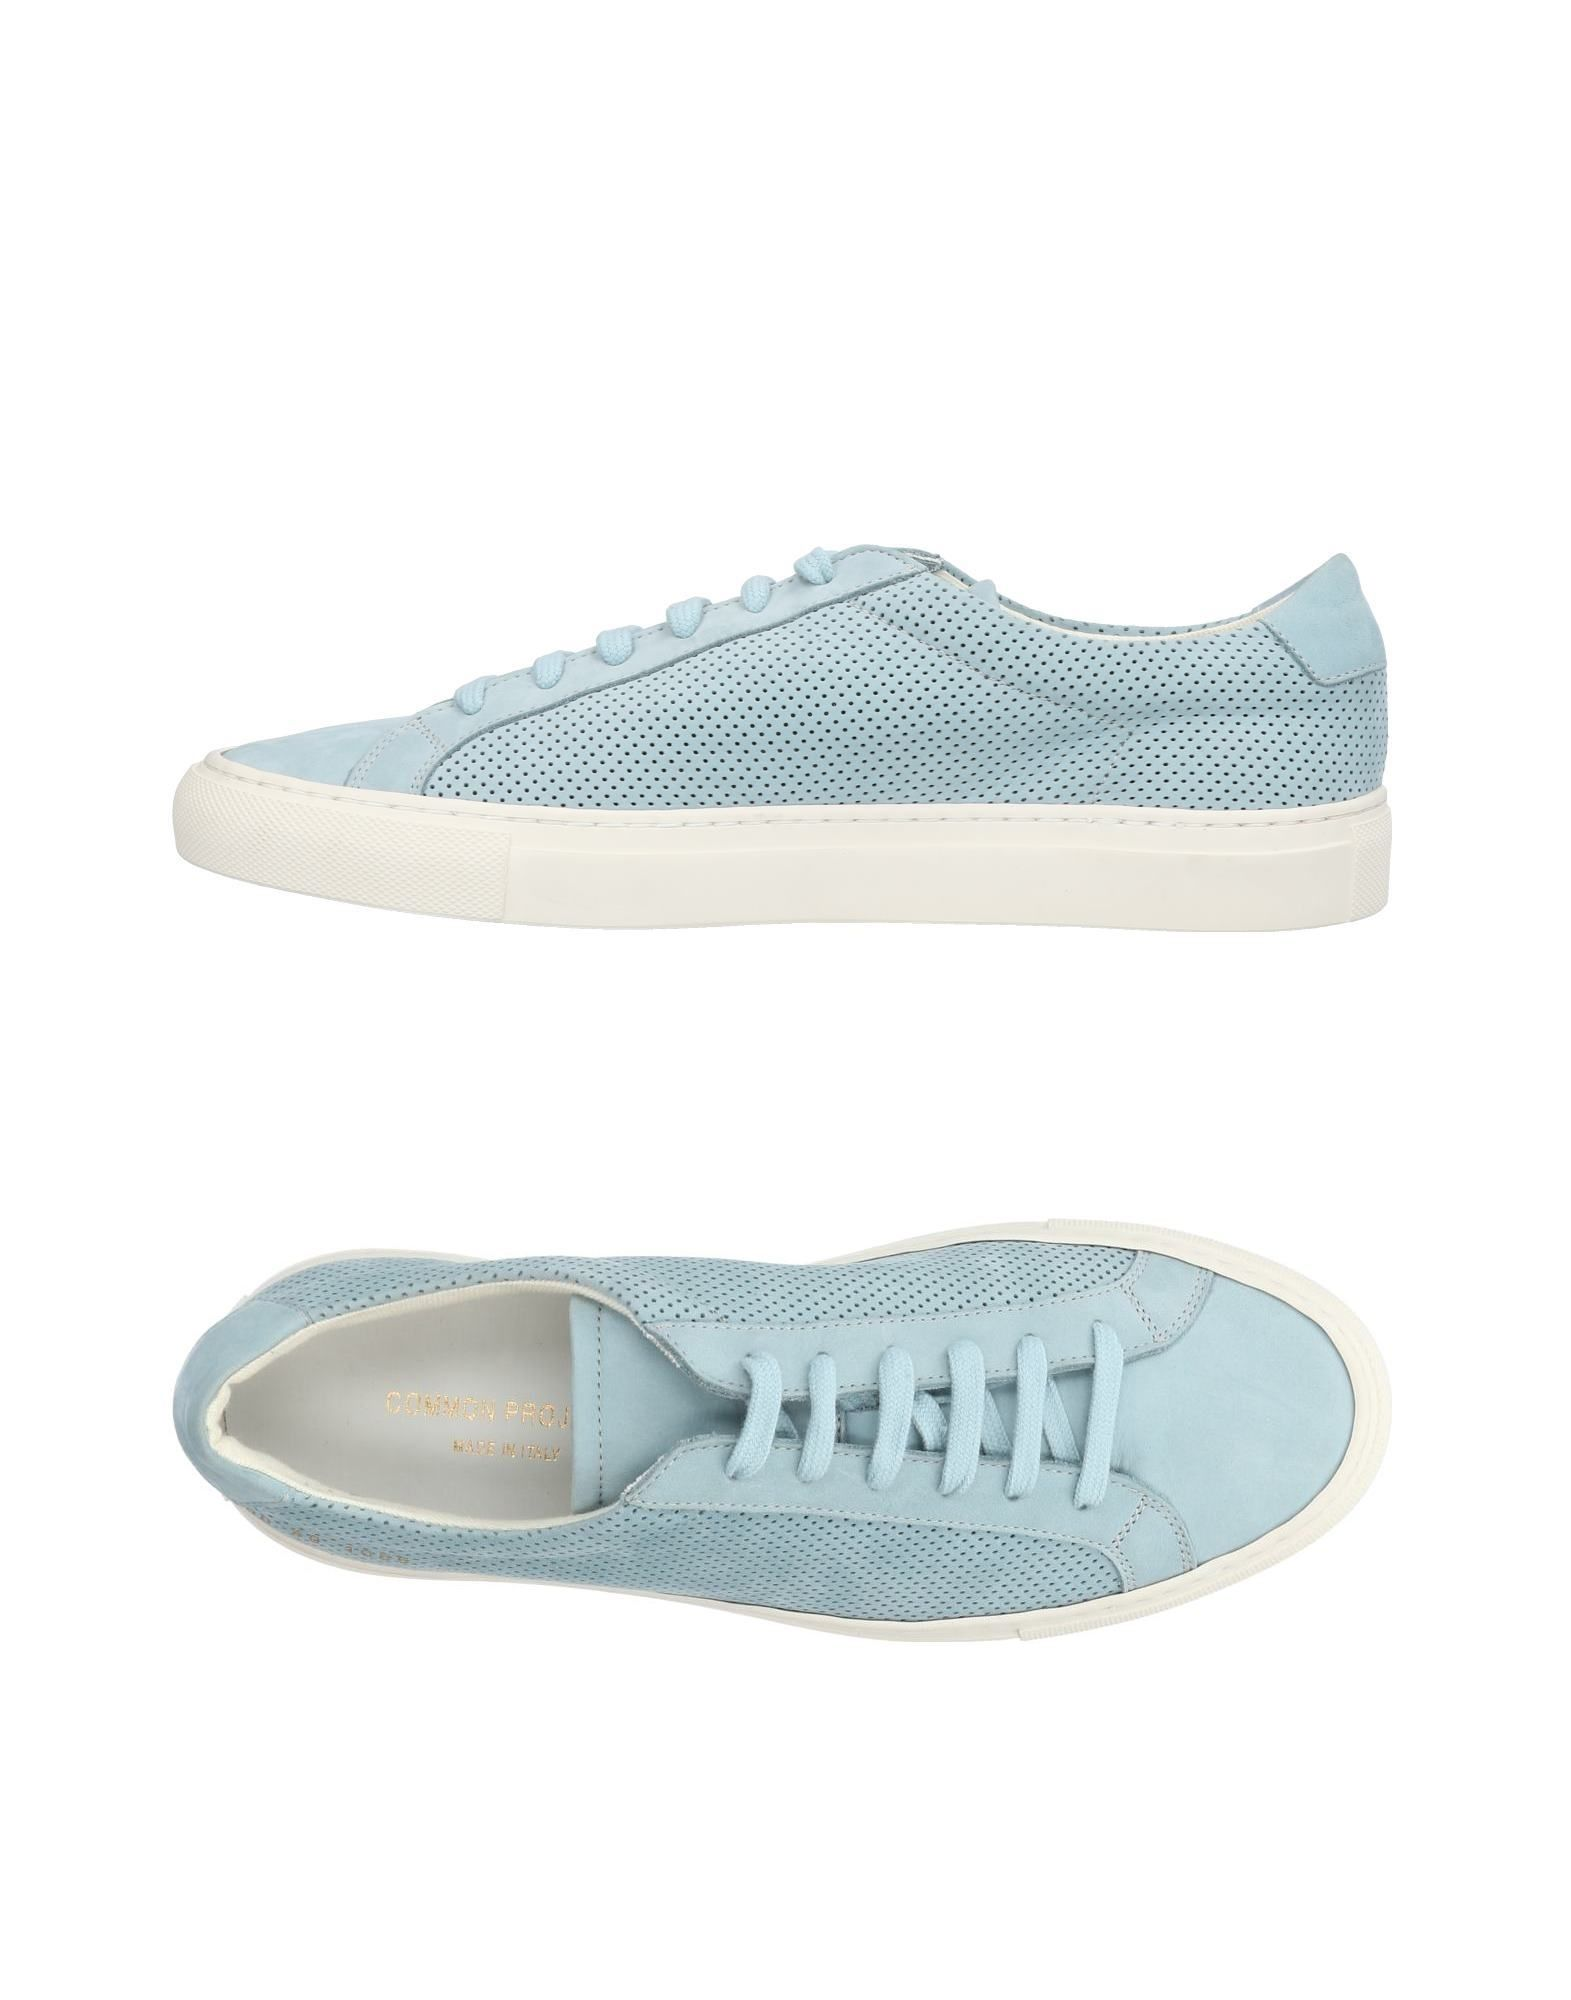 Sneakers Common Projects Uomo - Acquista online su